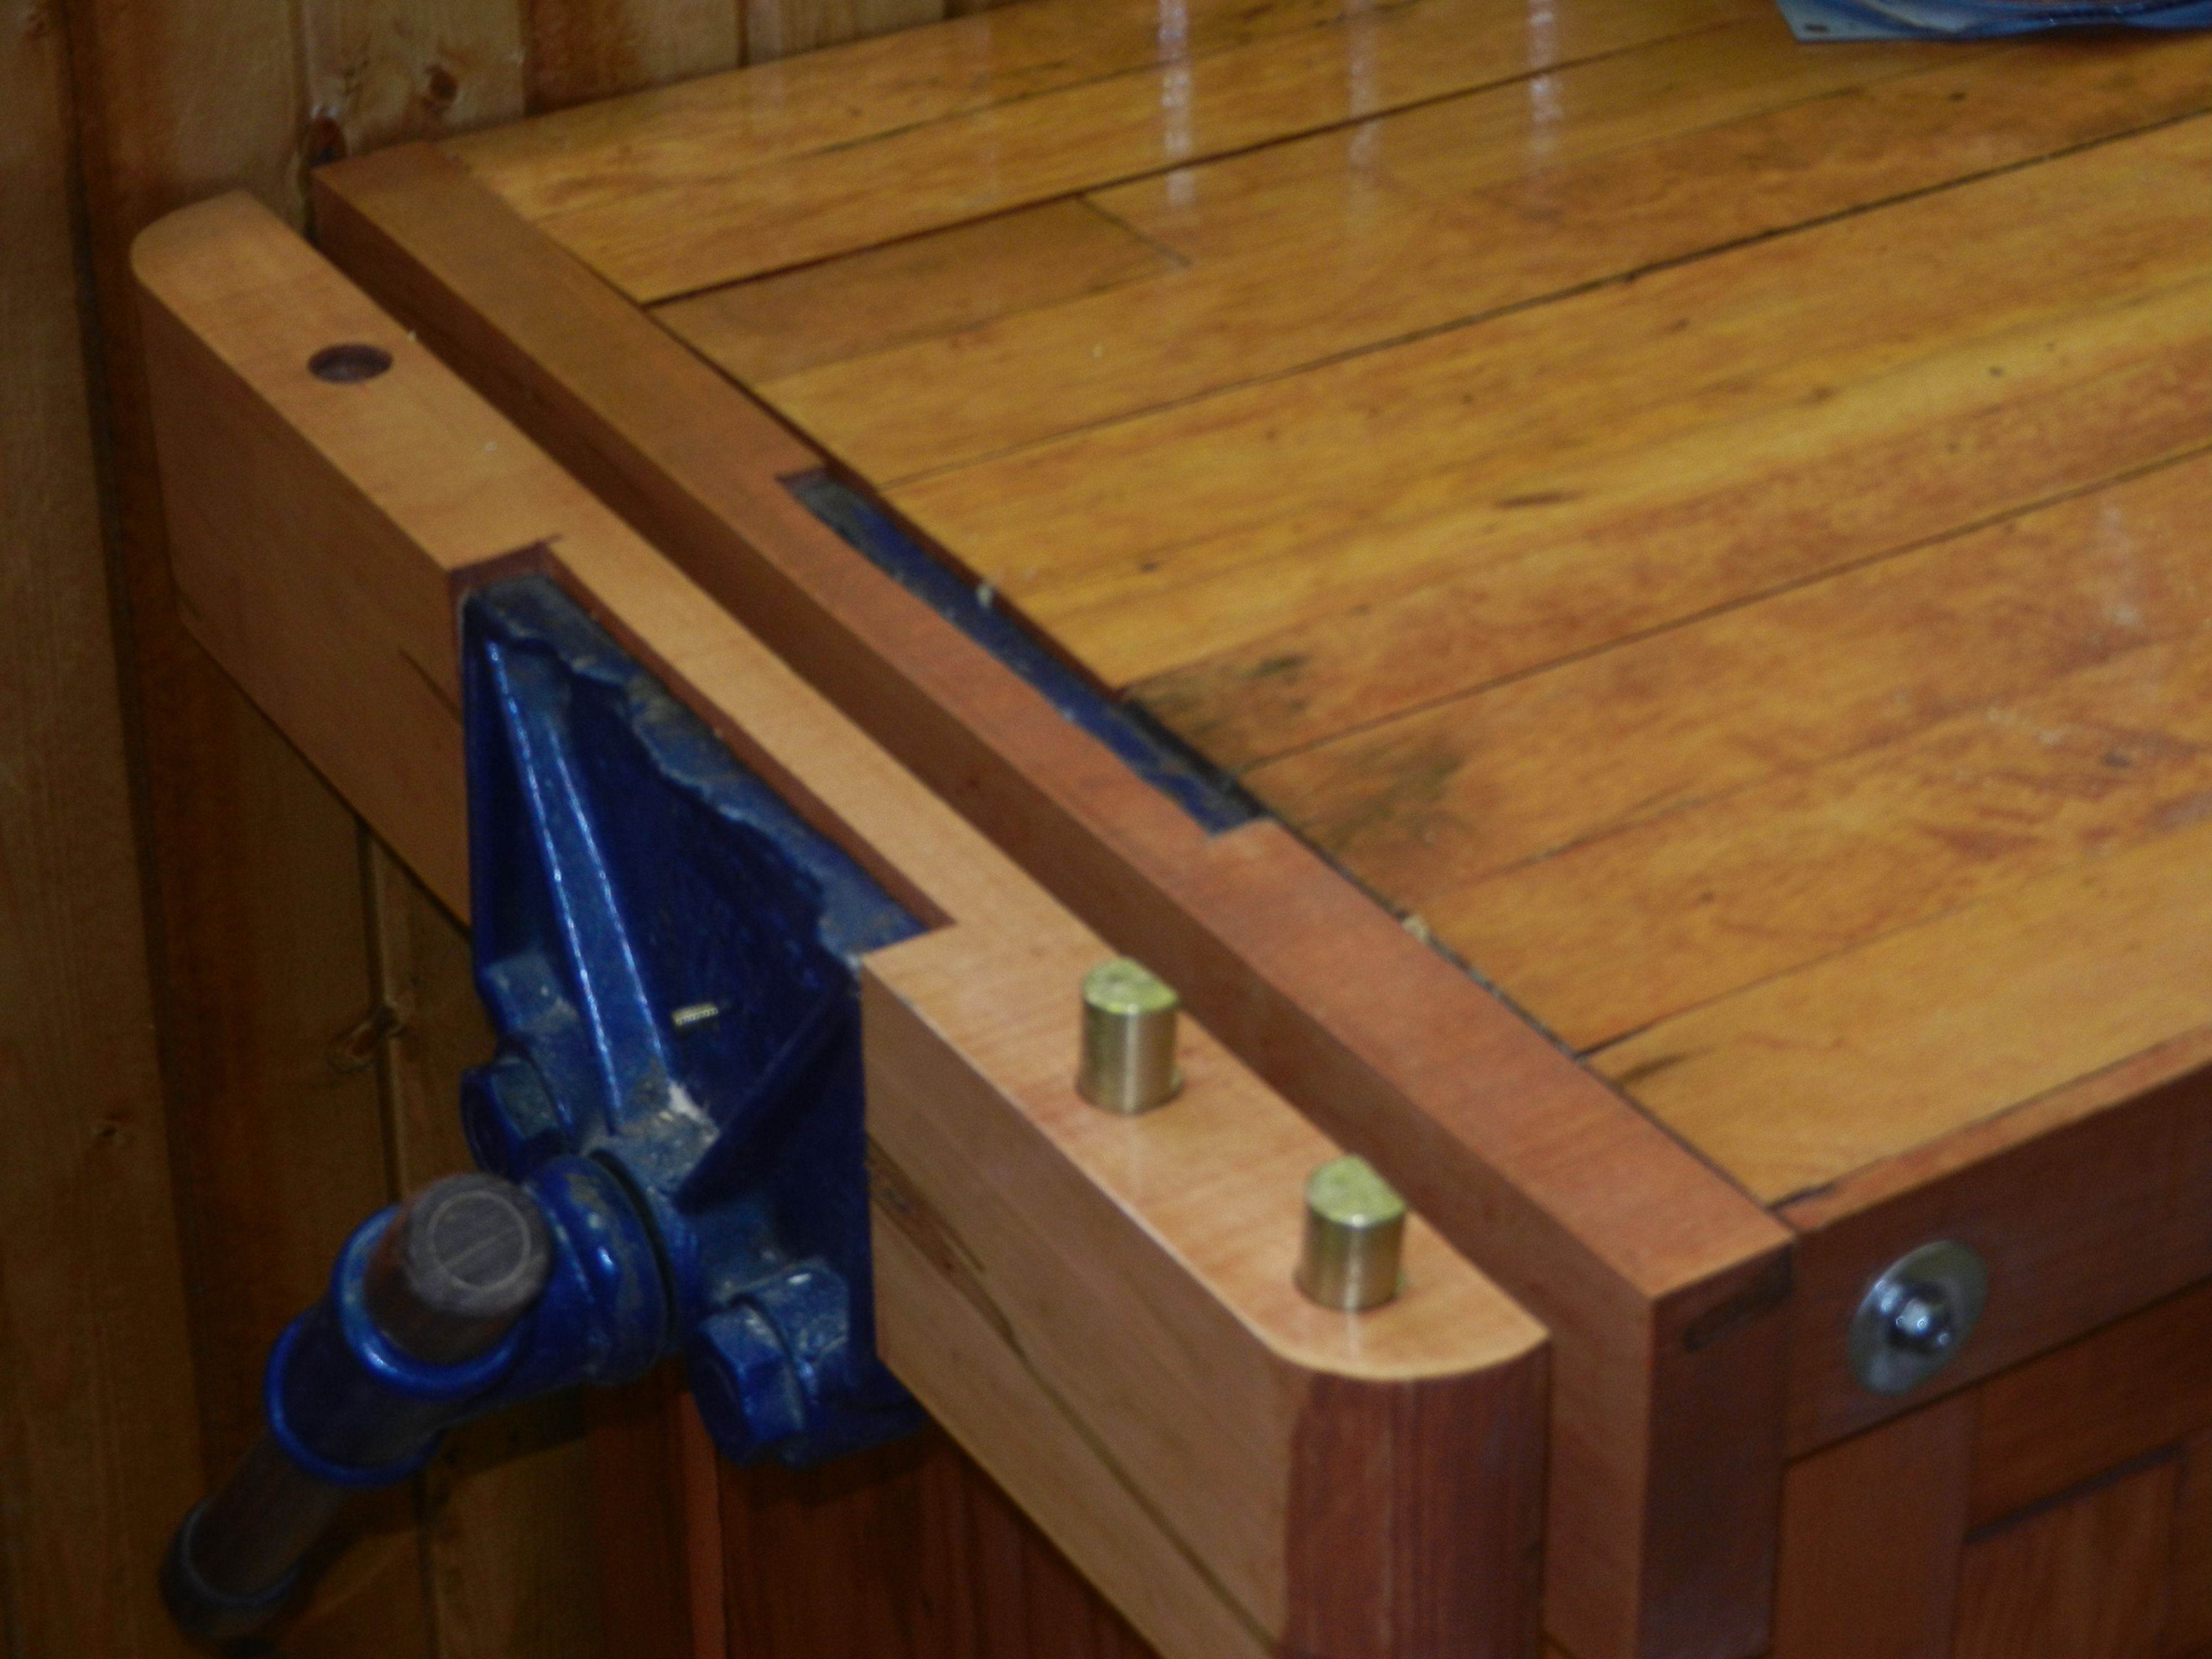 Adaptation Of A Front Vise To Serve As A Tail Vise Wooden